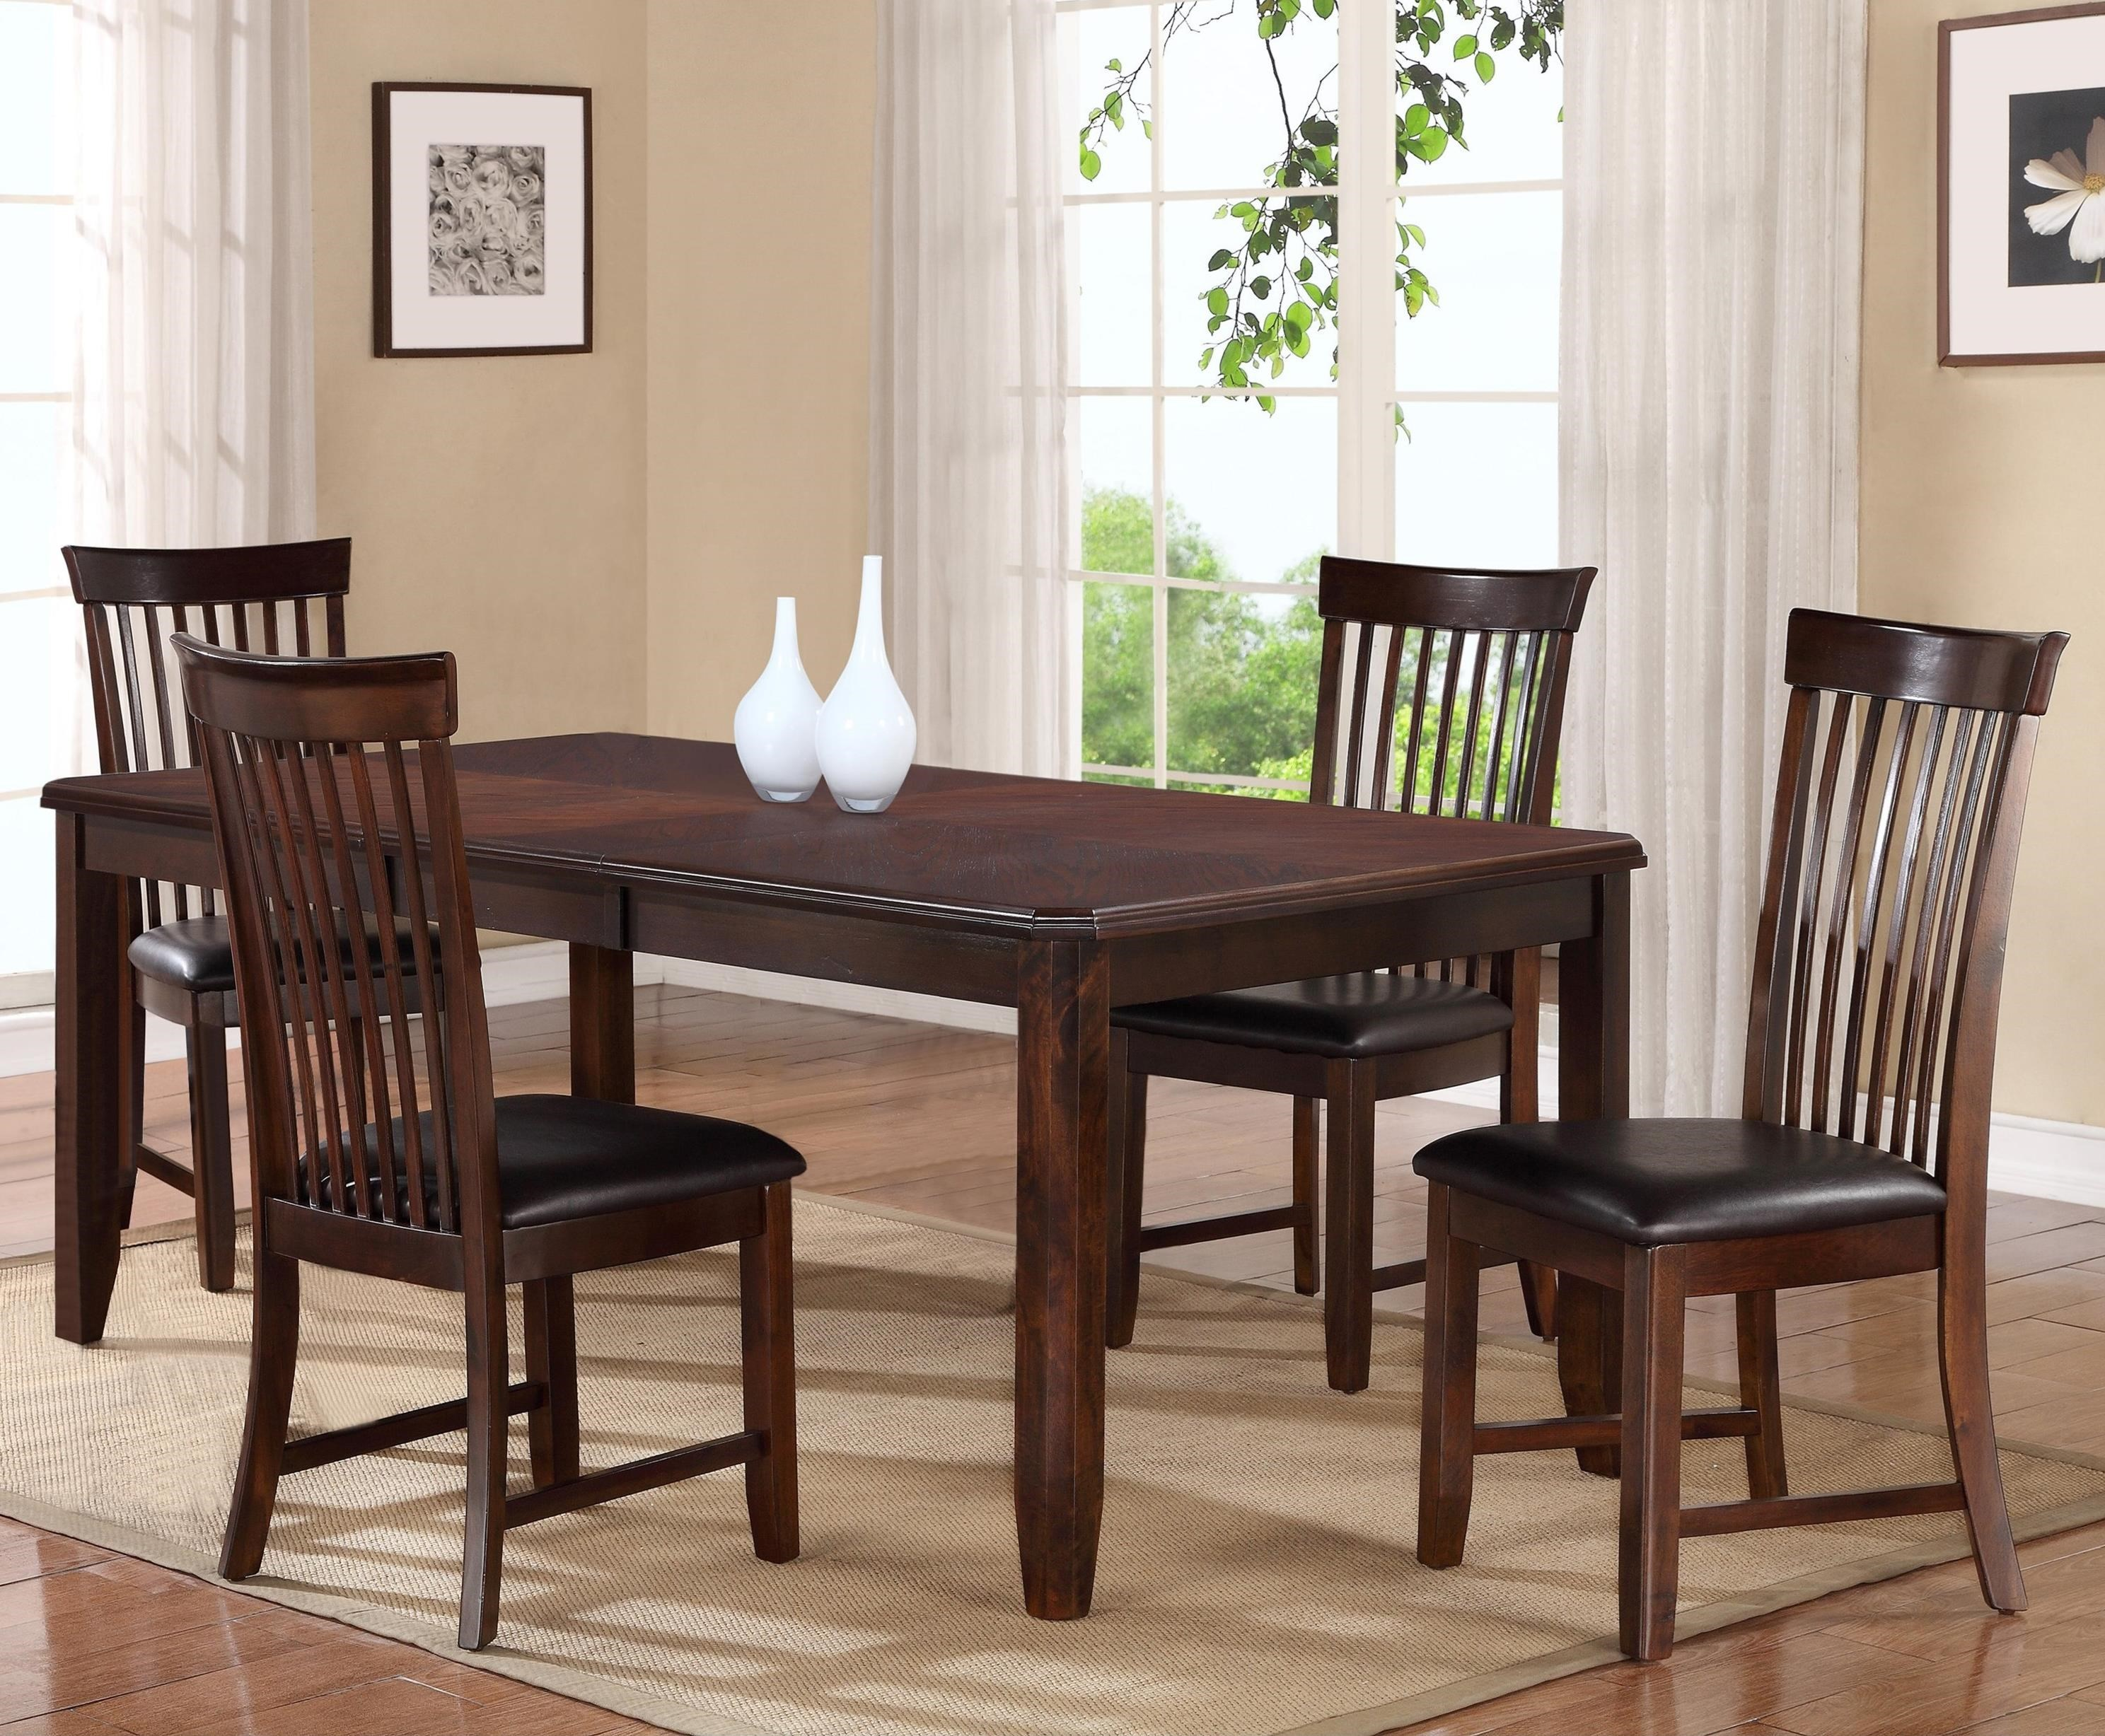 19003 5 Piece Dining Table Set By Holland House